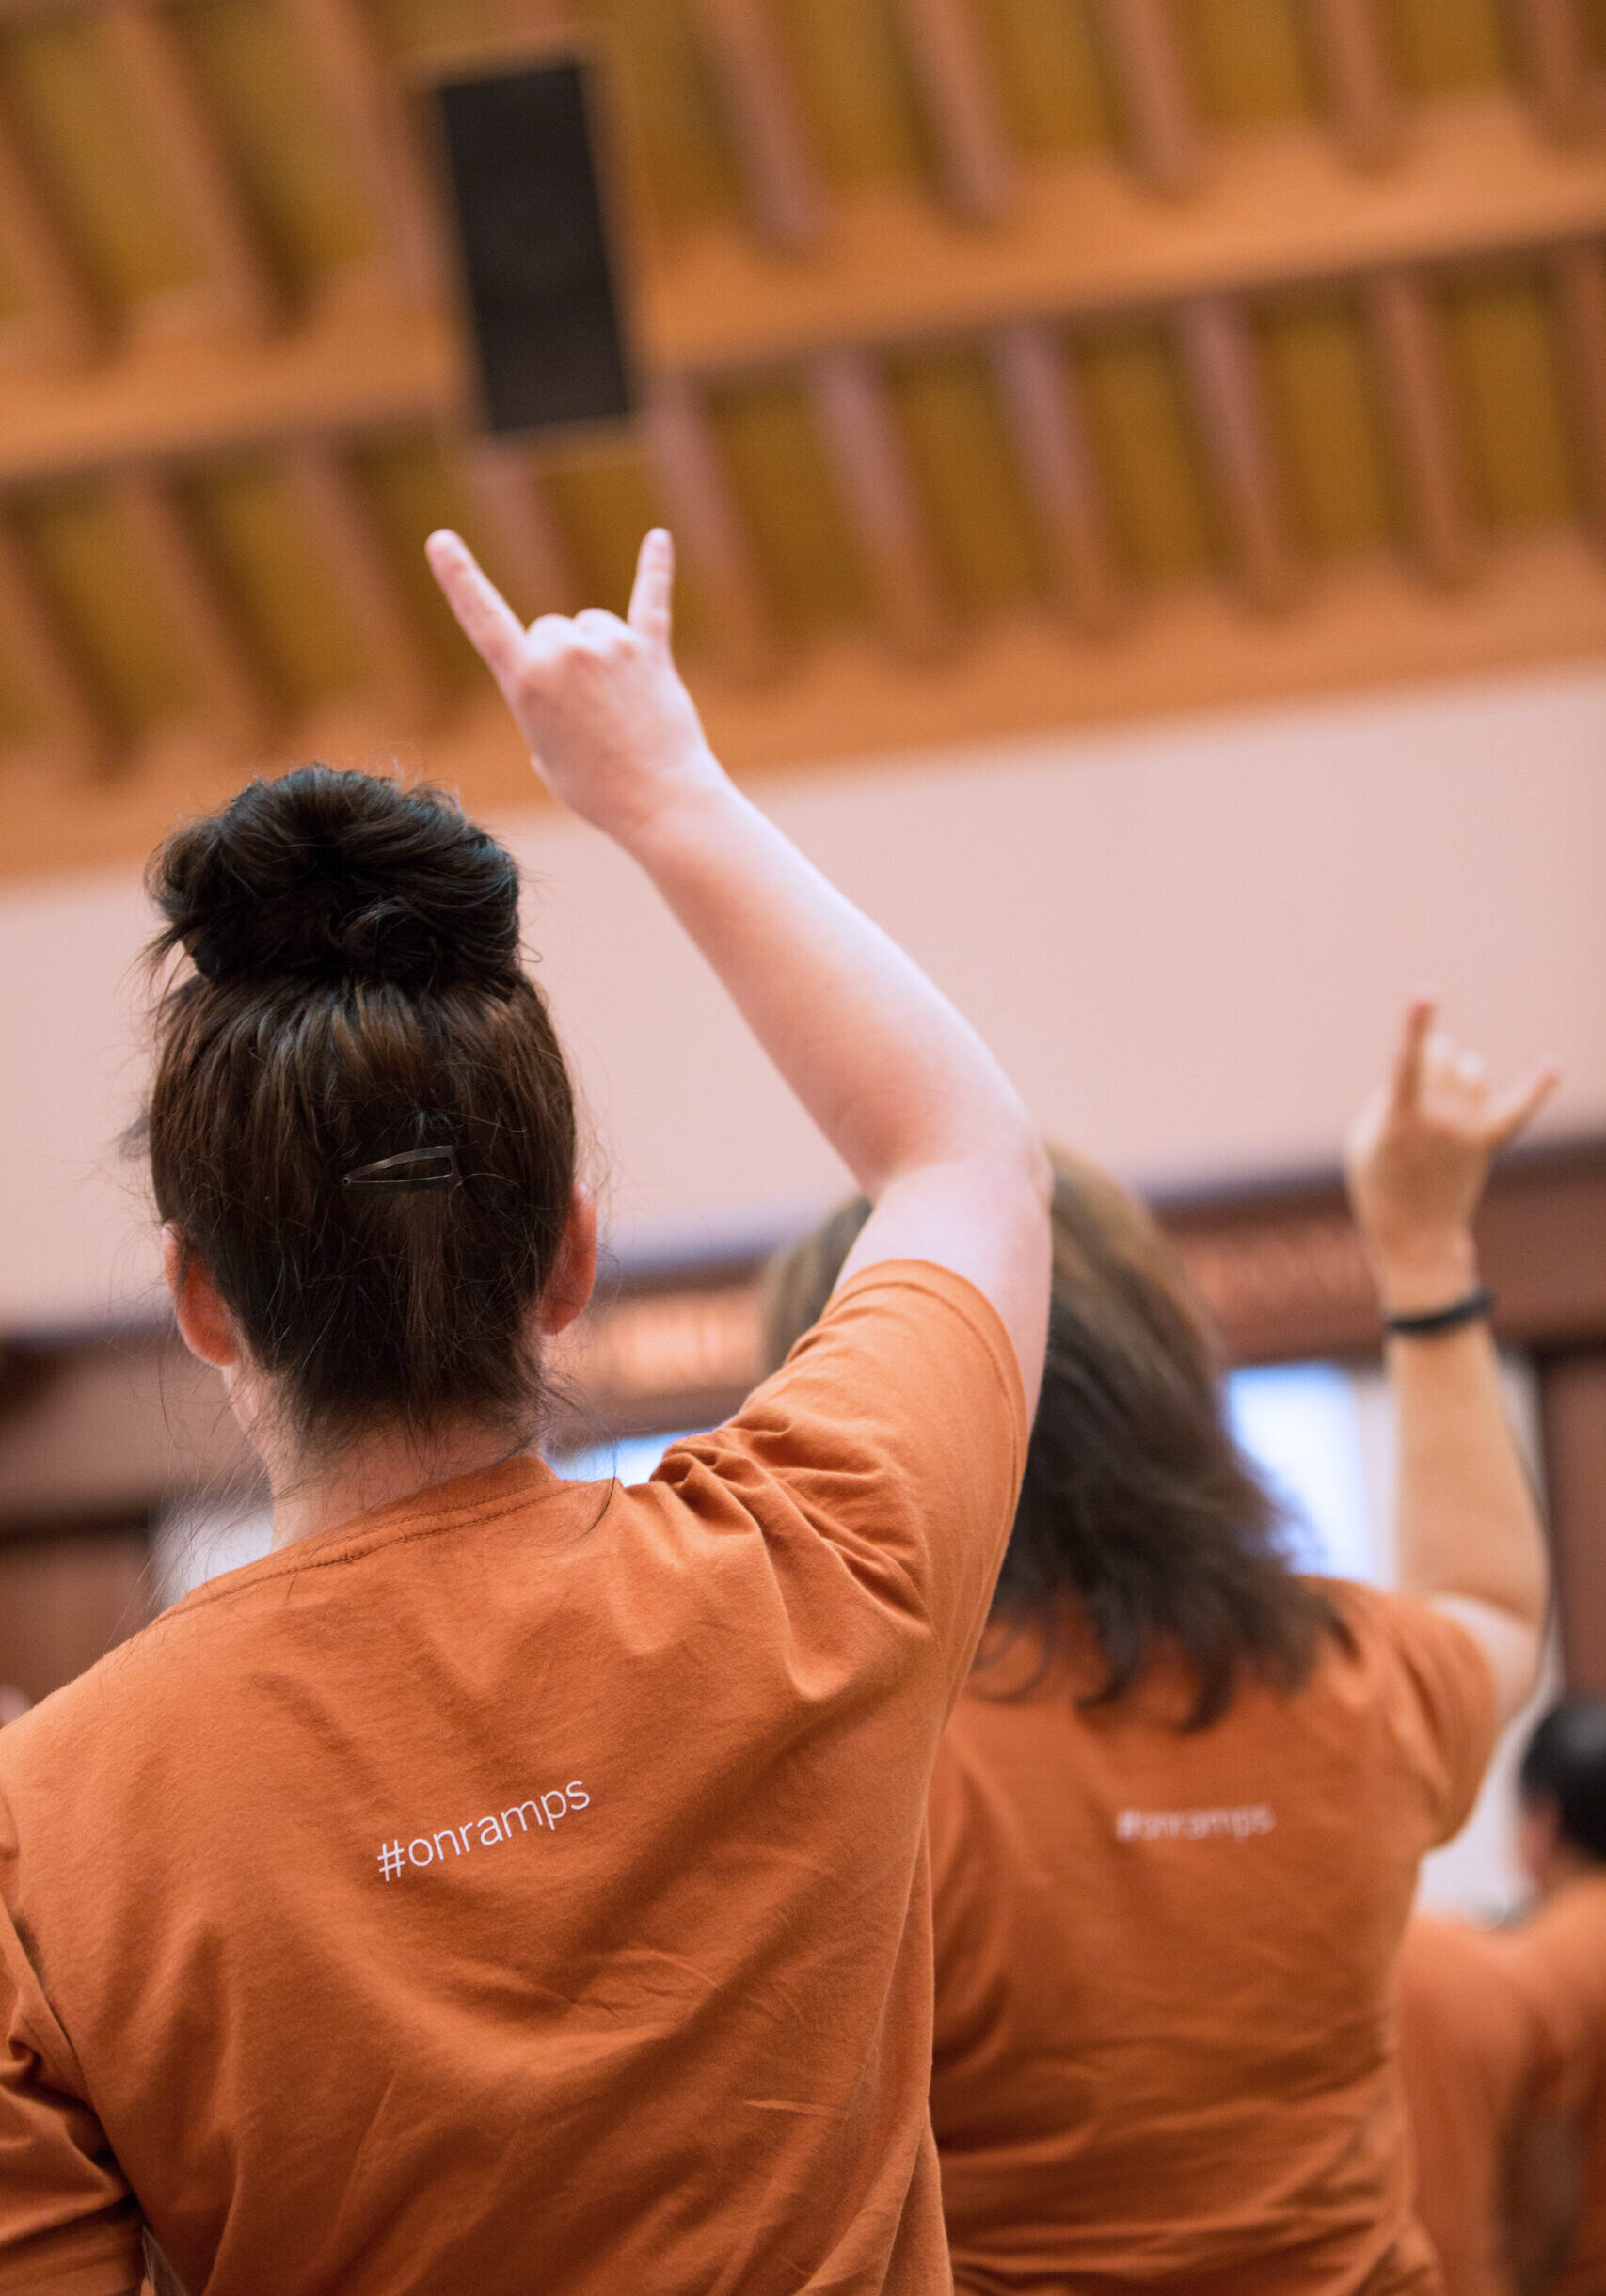 Person with OnRamps shirt on showing the UT Longhorns sign with their hand